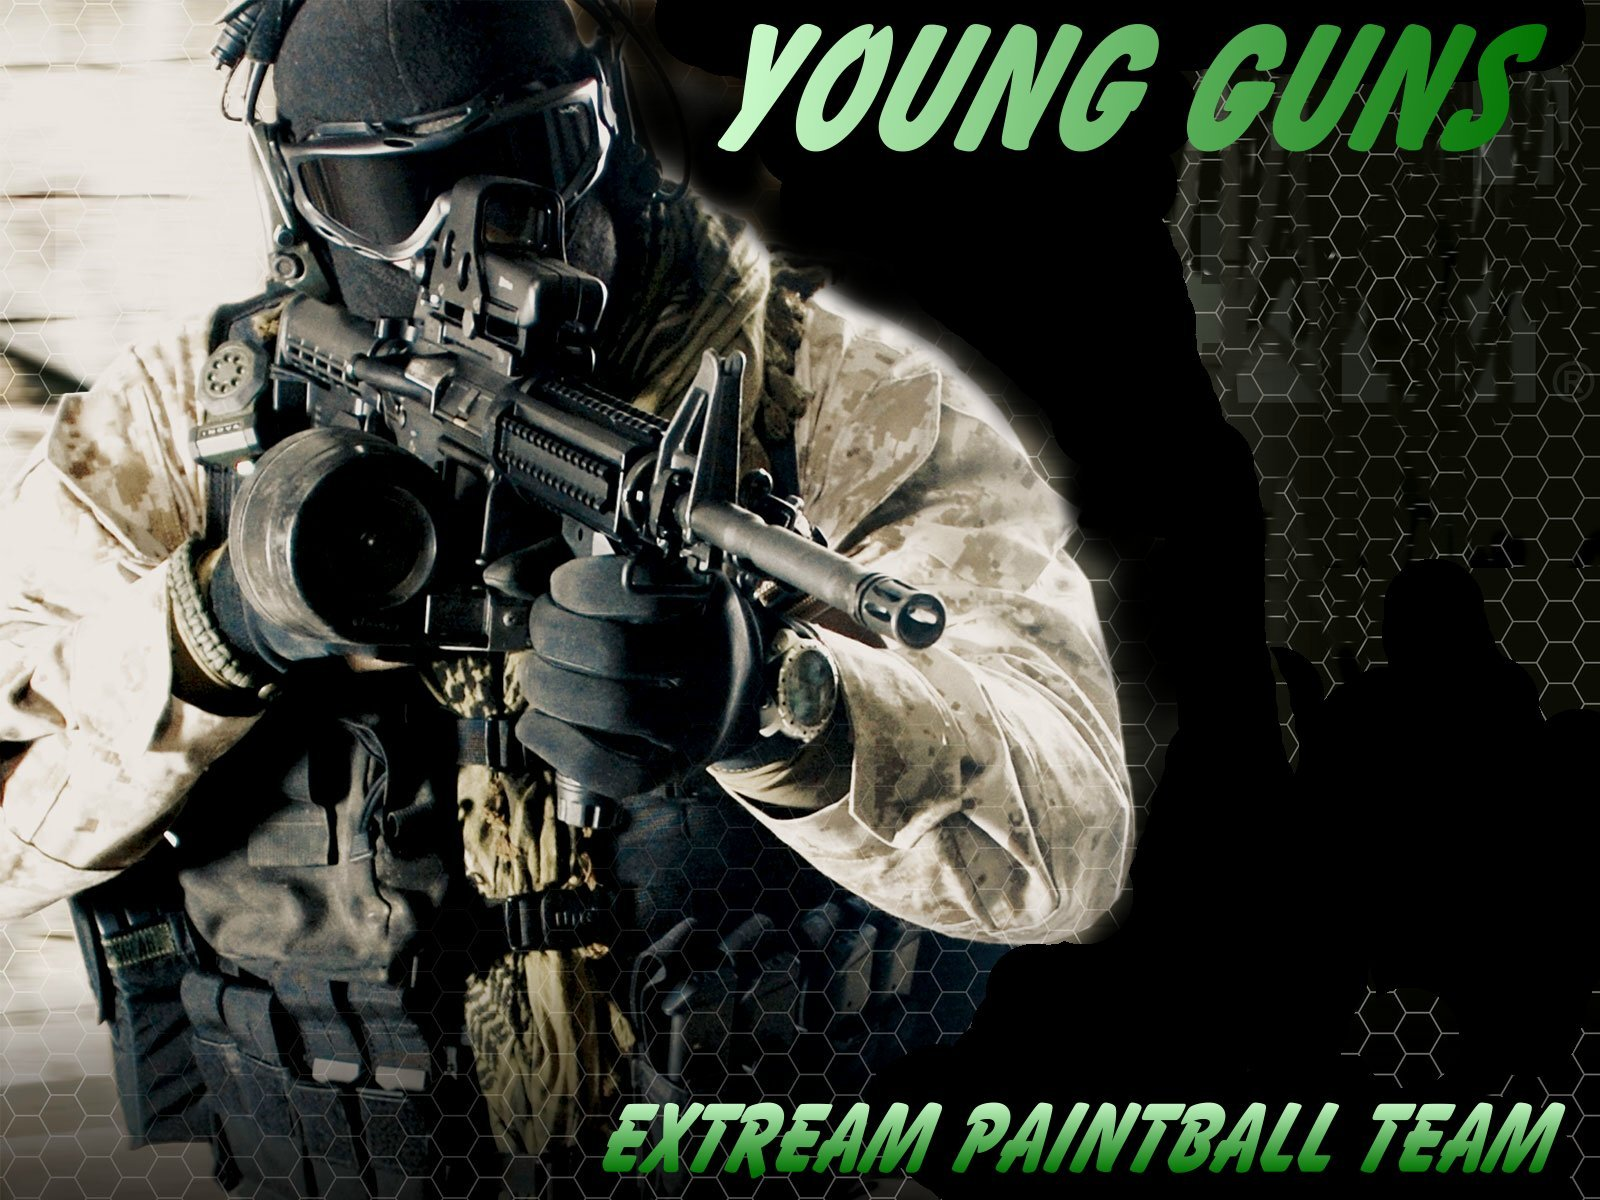 PAINTBALL weapon gun paint extreme strategy action wallpaper | 1600x1200 | 564686 | WallpaperUP